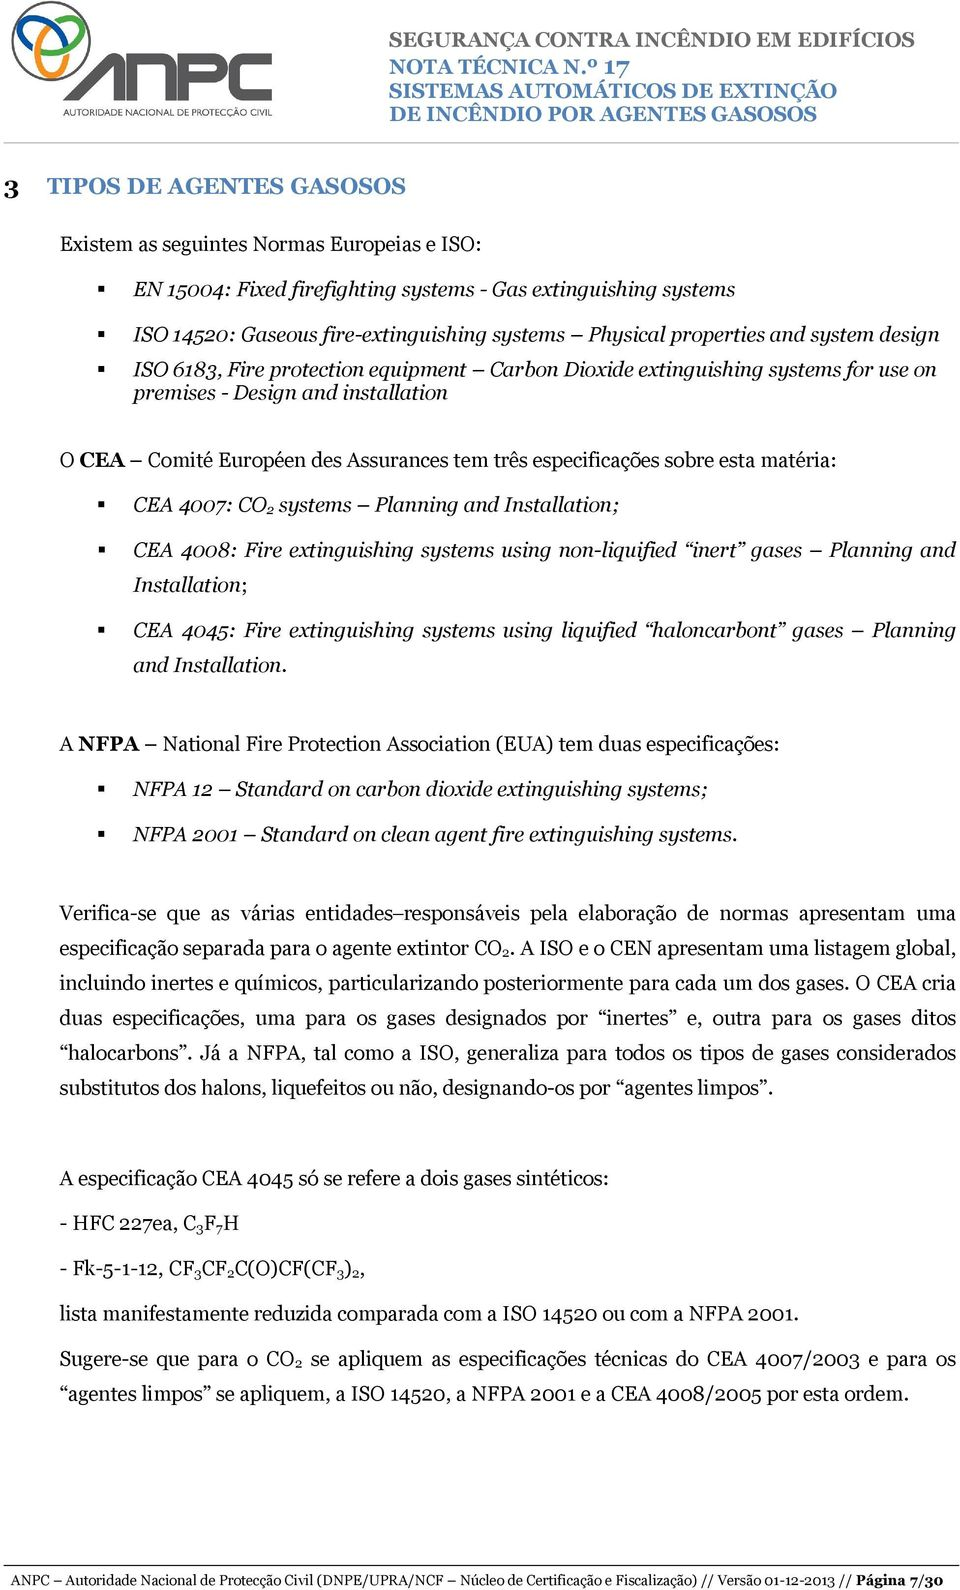 especificações sobre esta matéria: CEA 4007: CO 2 systems Planning and Installation; CEA 4008: Fire extinguishing systems using non-liquified inert gases Planning and Installation; CEA 4045: Fire